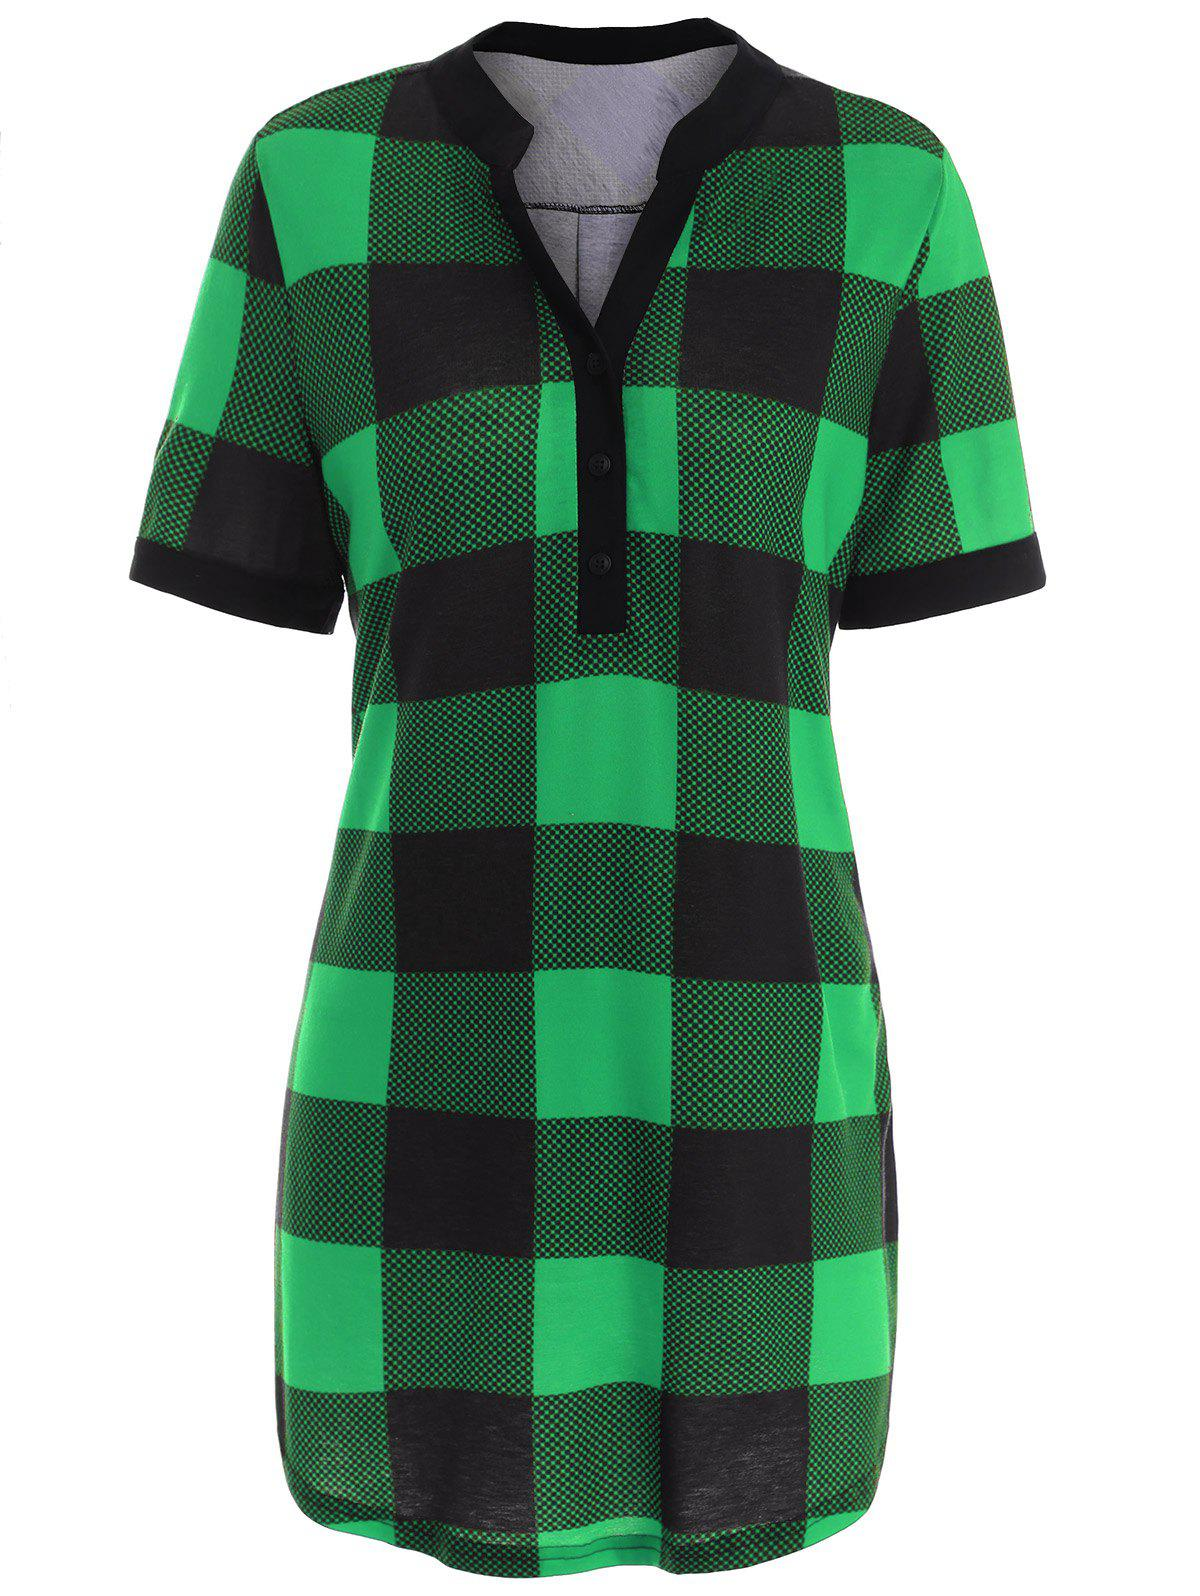 Plaid Plus Size Tunic Top plaid plus size tunic top